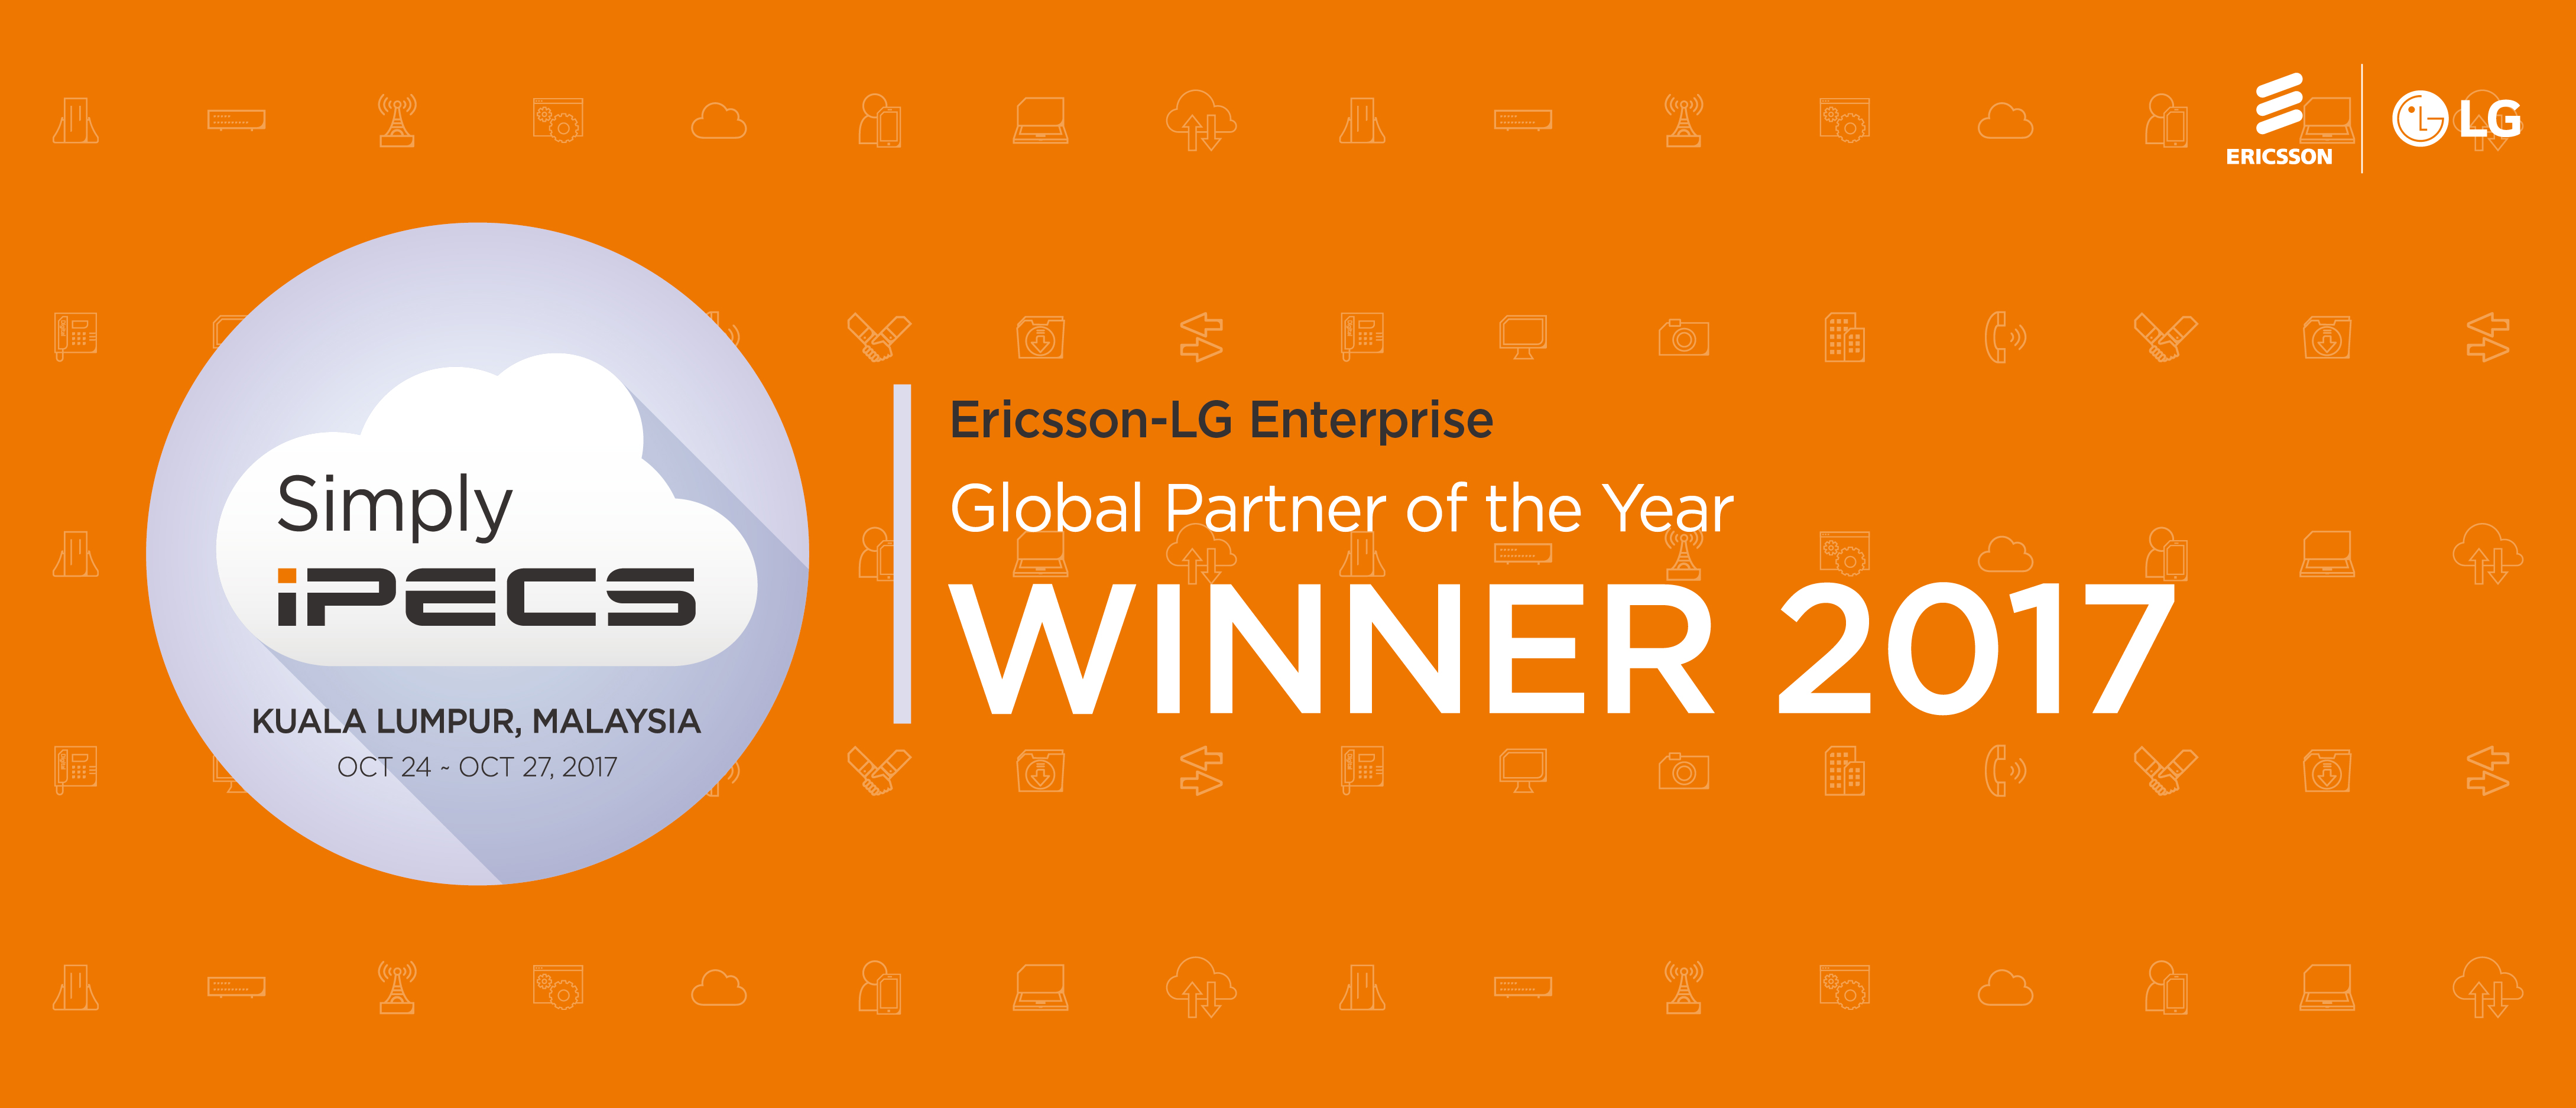 Global Partner of the Year Pragma